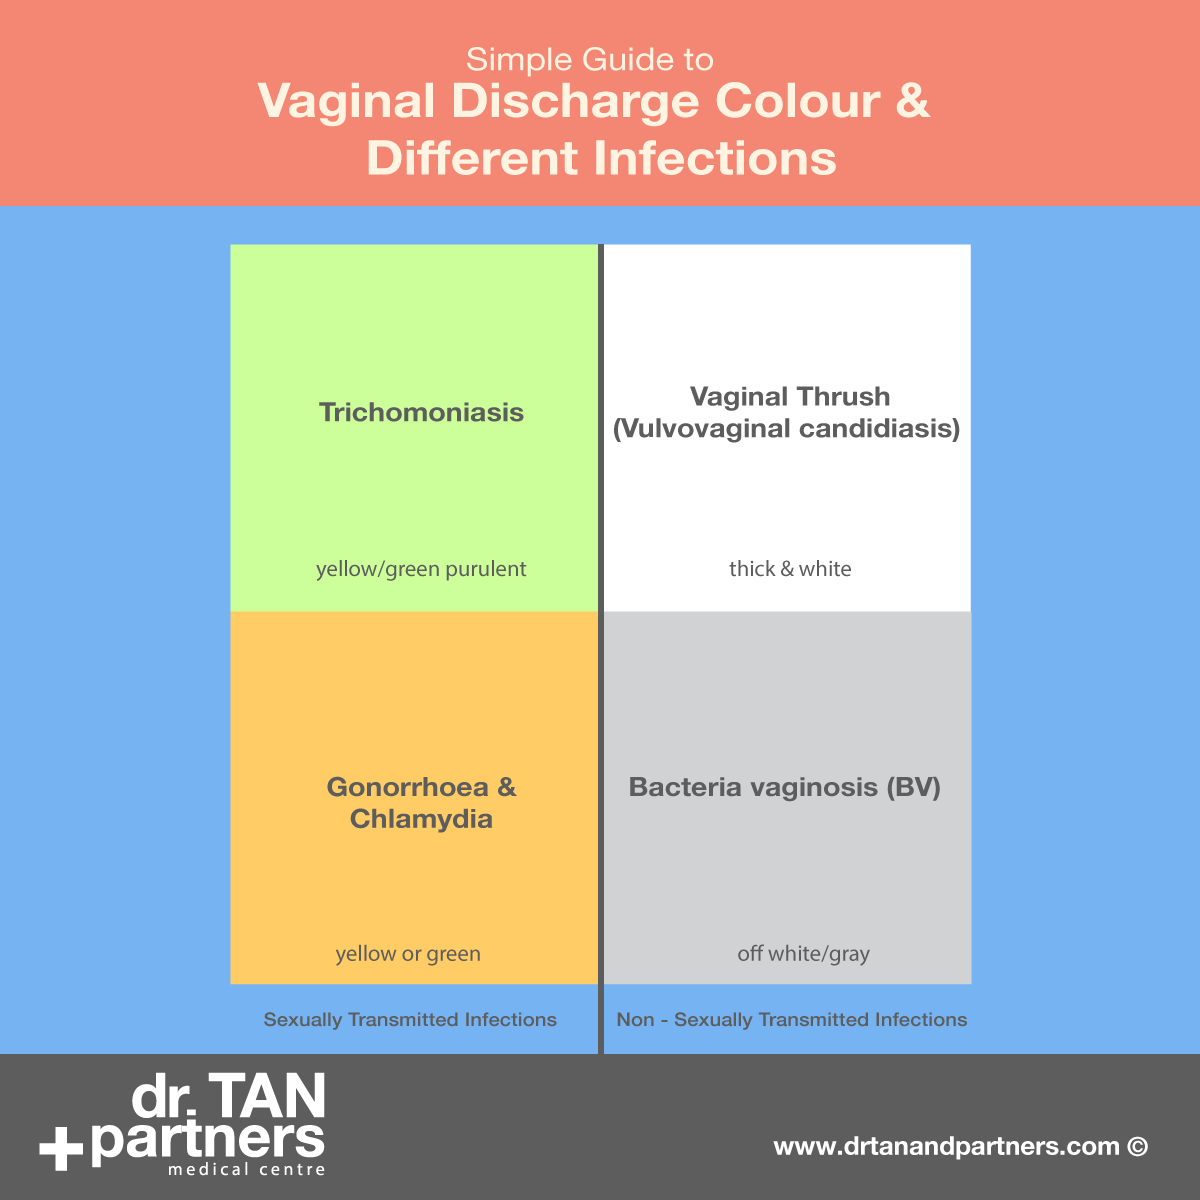 Vaginal discharge without infection